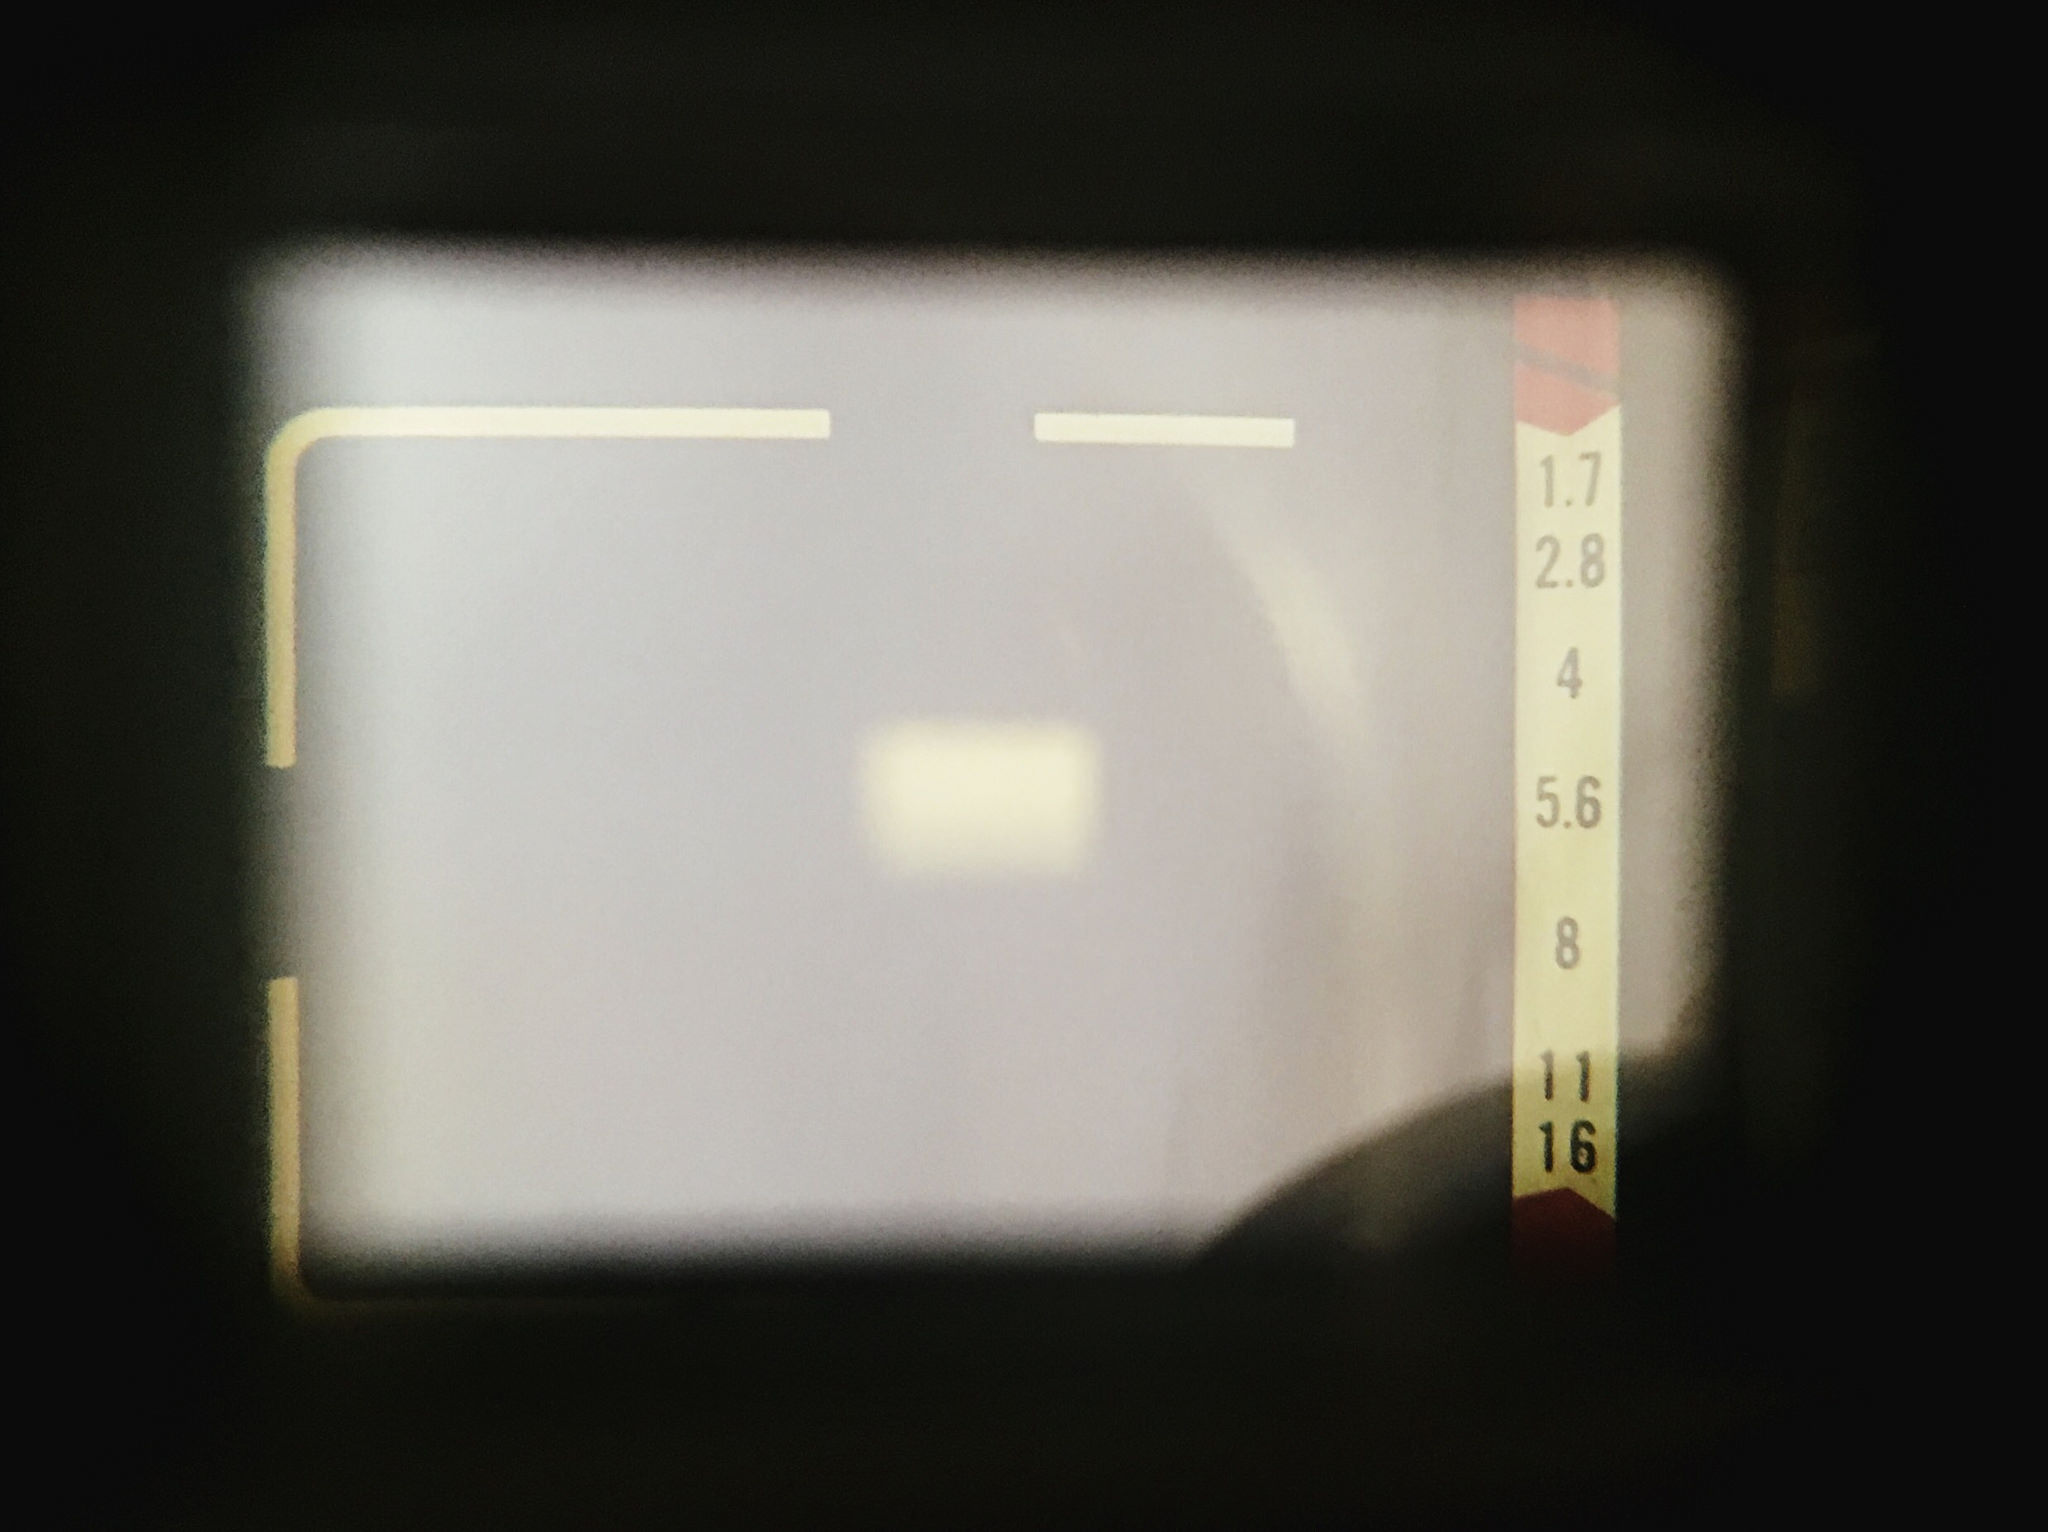 canonet-ql17-viewfinder